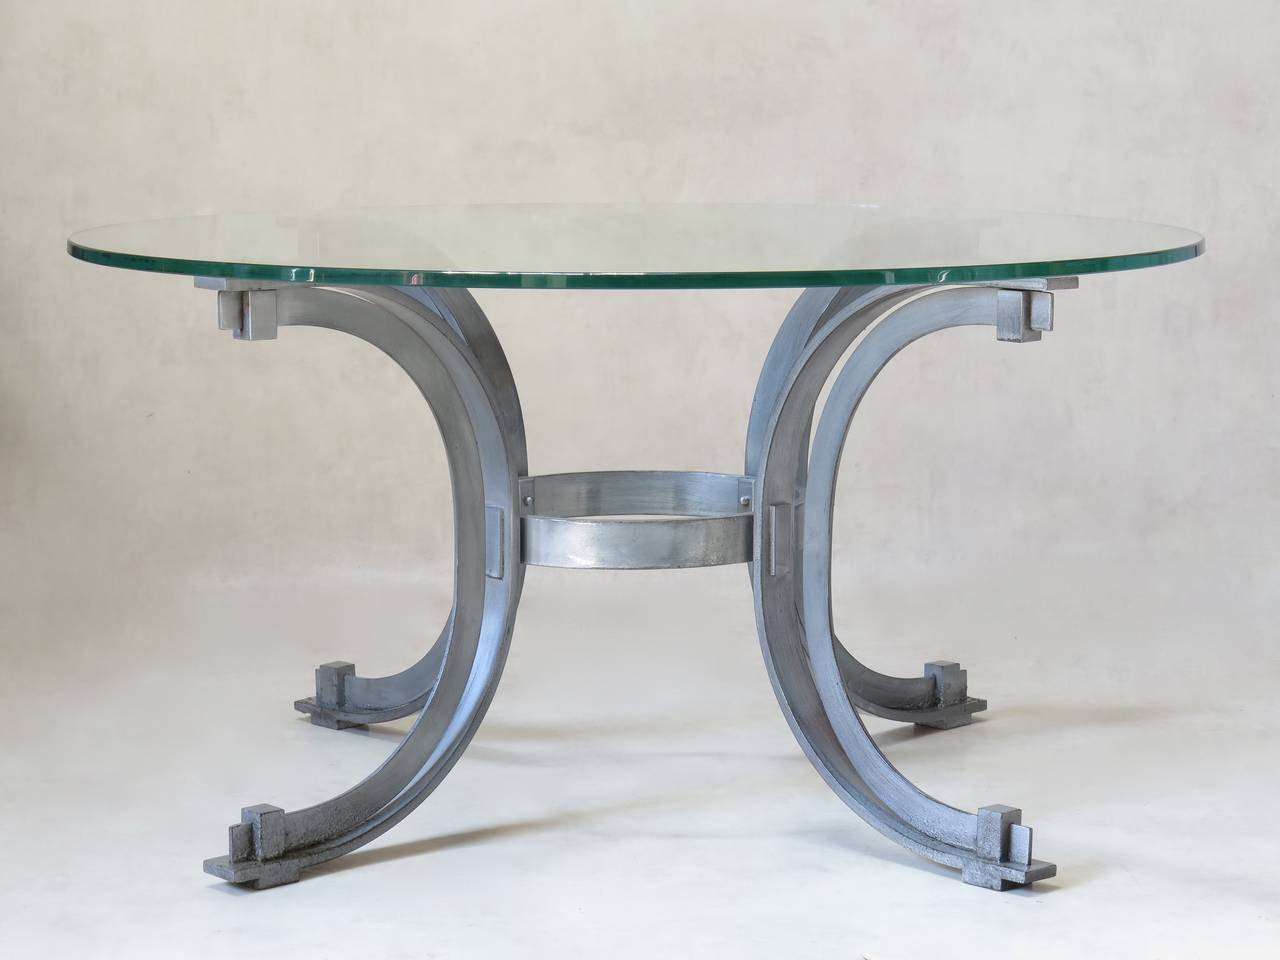 Silvered Iron Coffee Table with Glass Top, France, 1950s For Sale 1